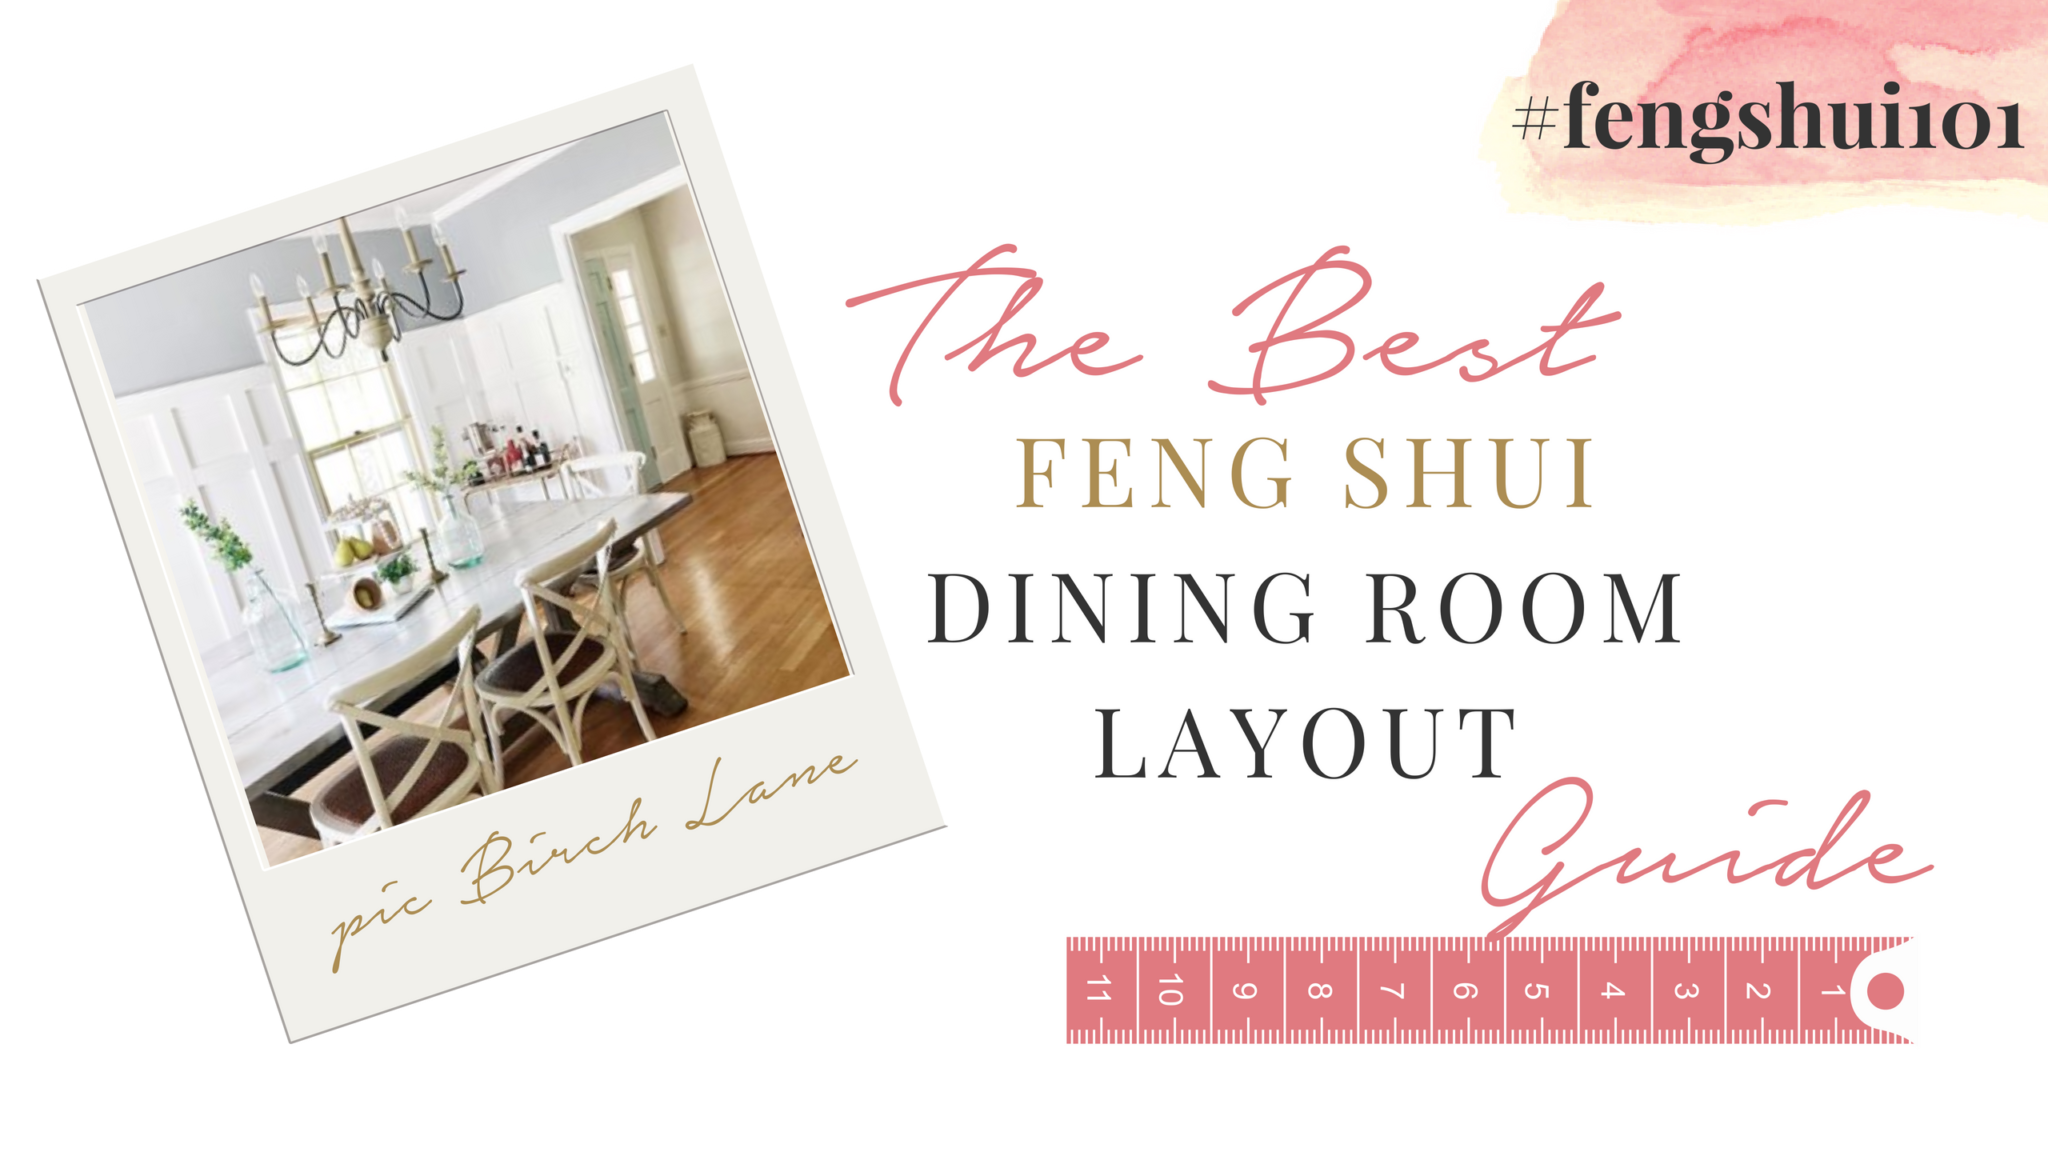 The Best Feng Shui Dining Room Layout Guide Fengshui101 By Bridget